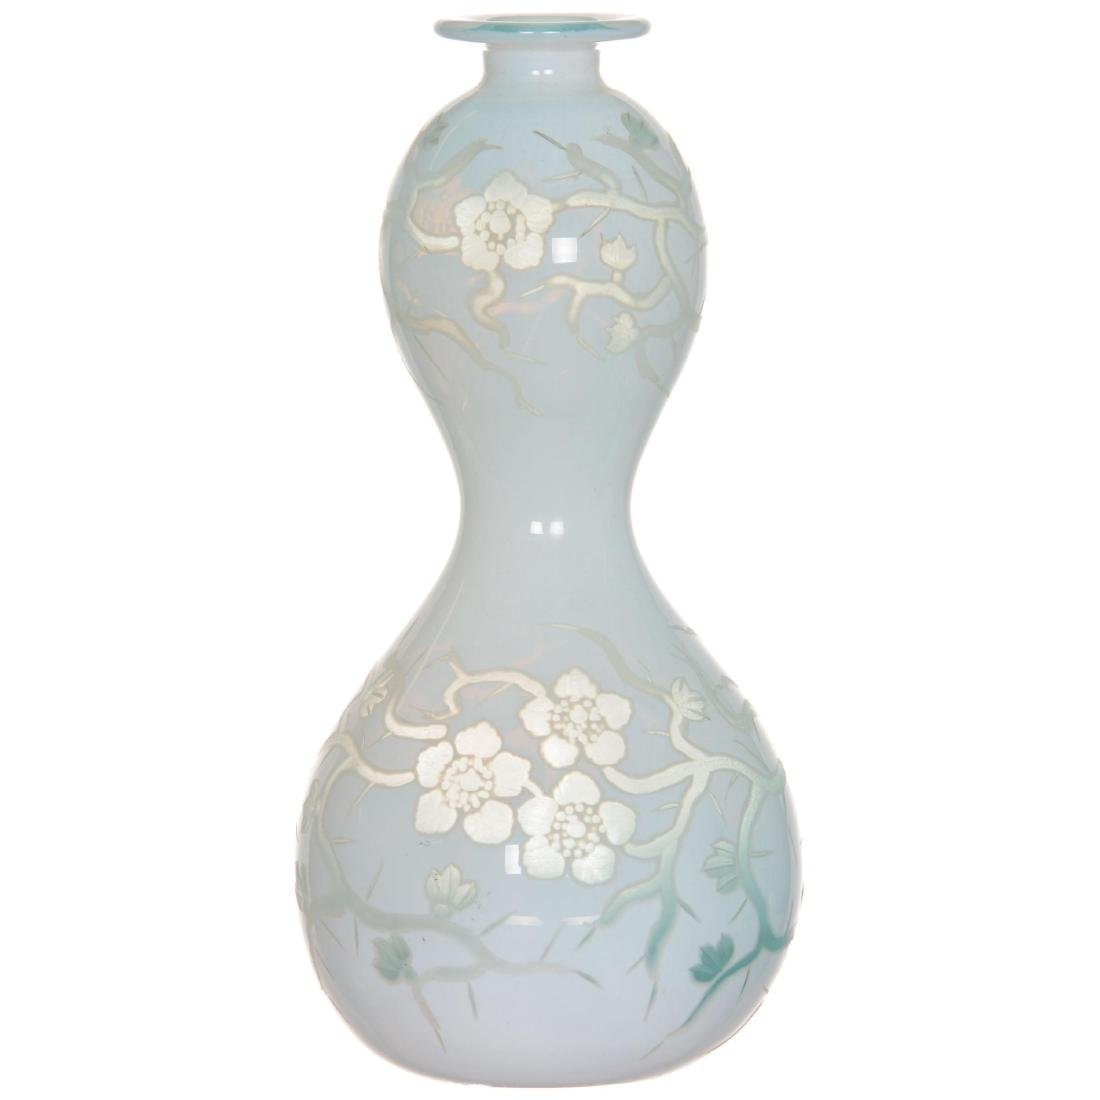 Stevens & Williams Art Glass Vase